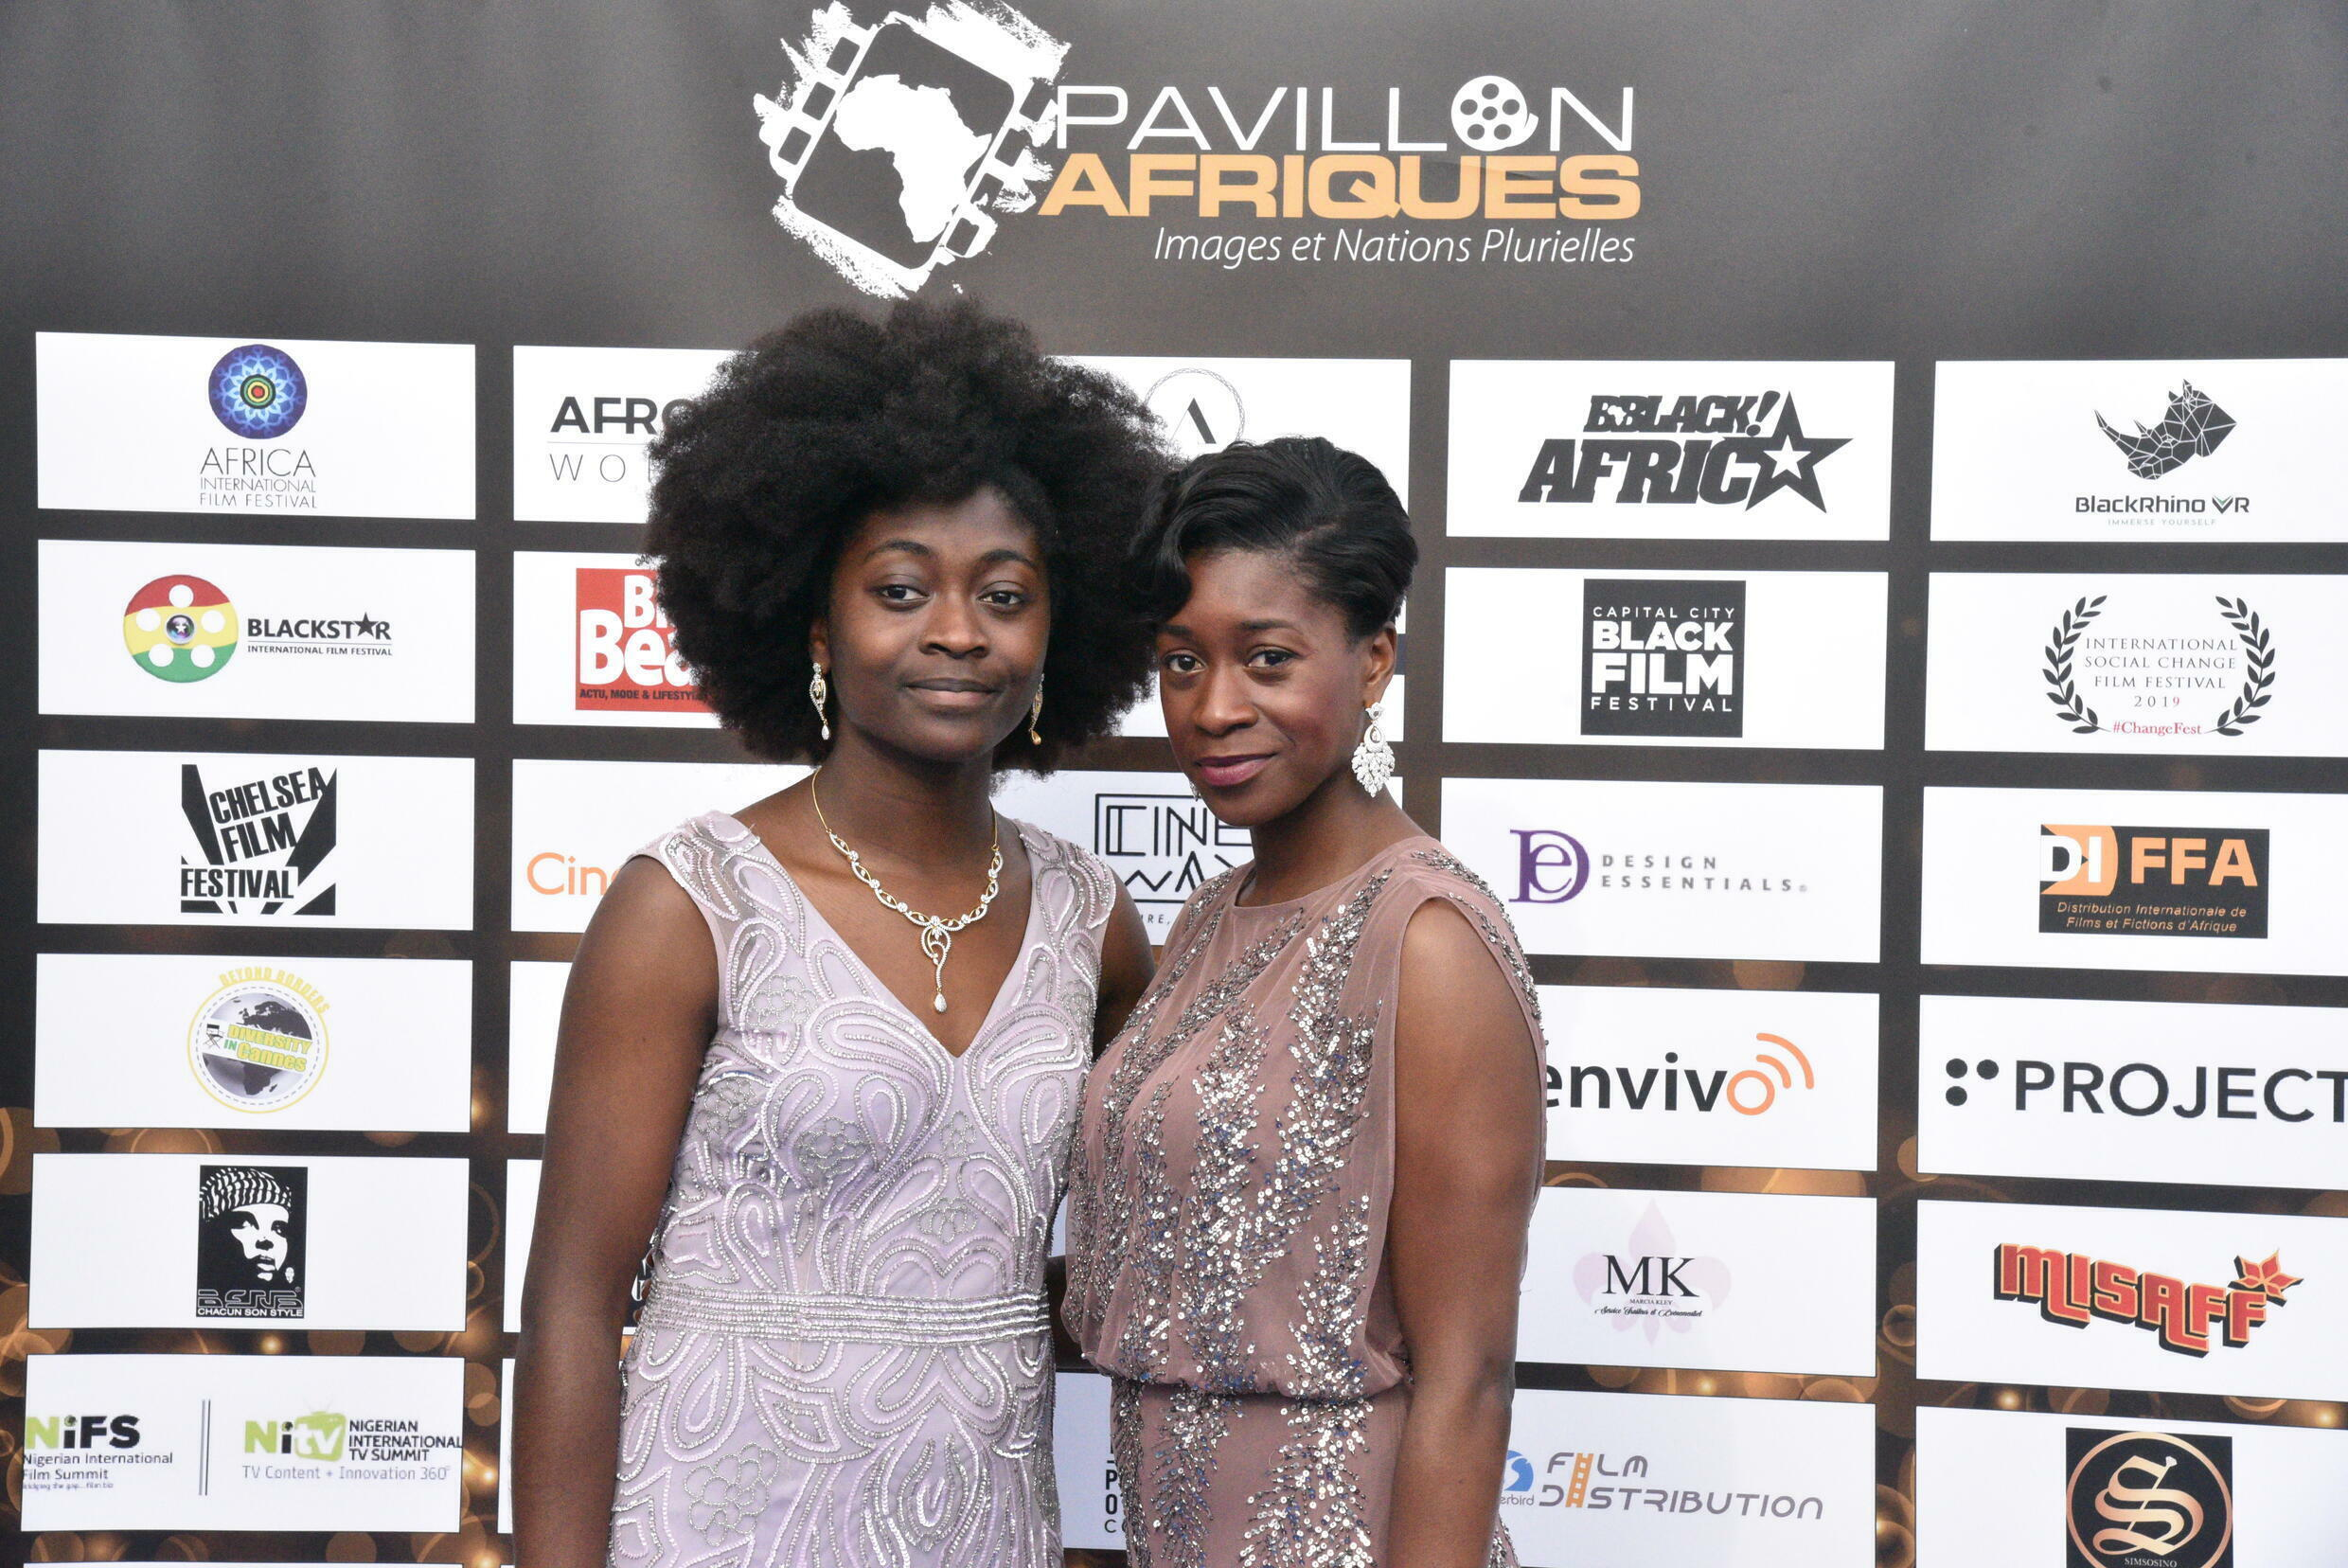 Actress Adetinpo Thomas (R) and Adesola Thomas (L) at the Pavillon Afriques stand, Cannes Marché du Film, May 2019